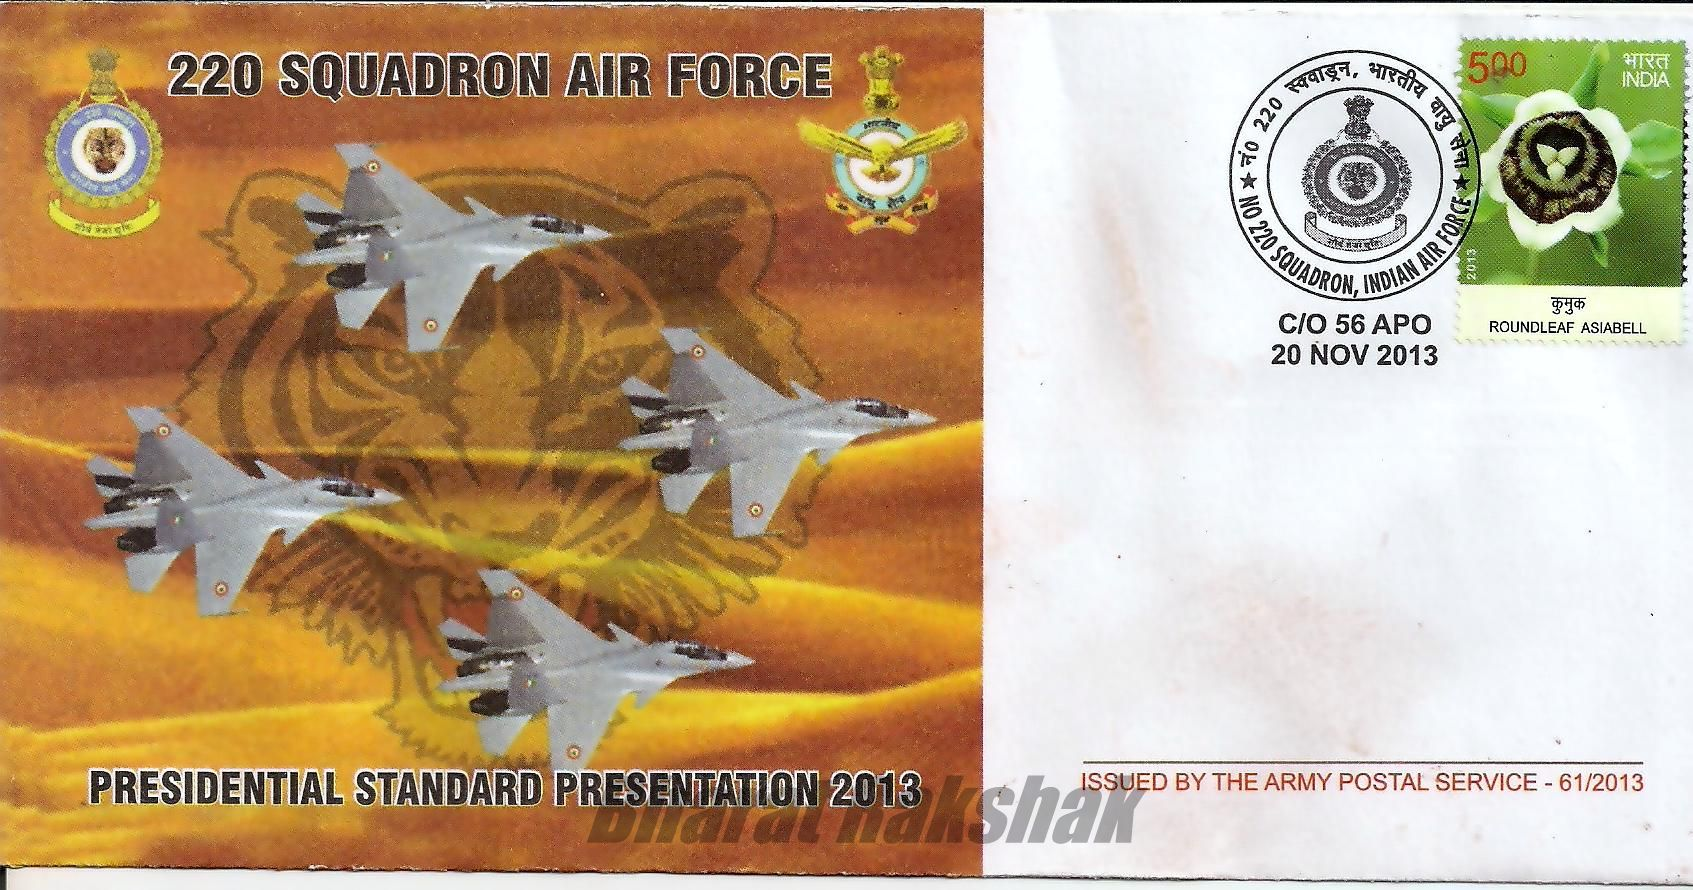 Presidents Standards to No.220 Squadron